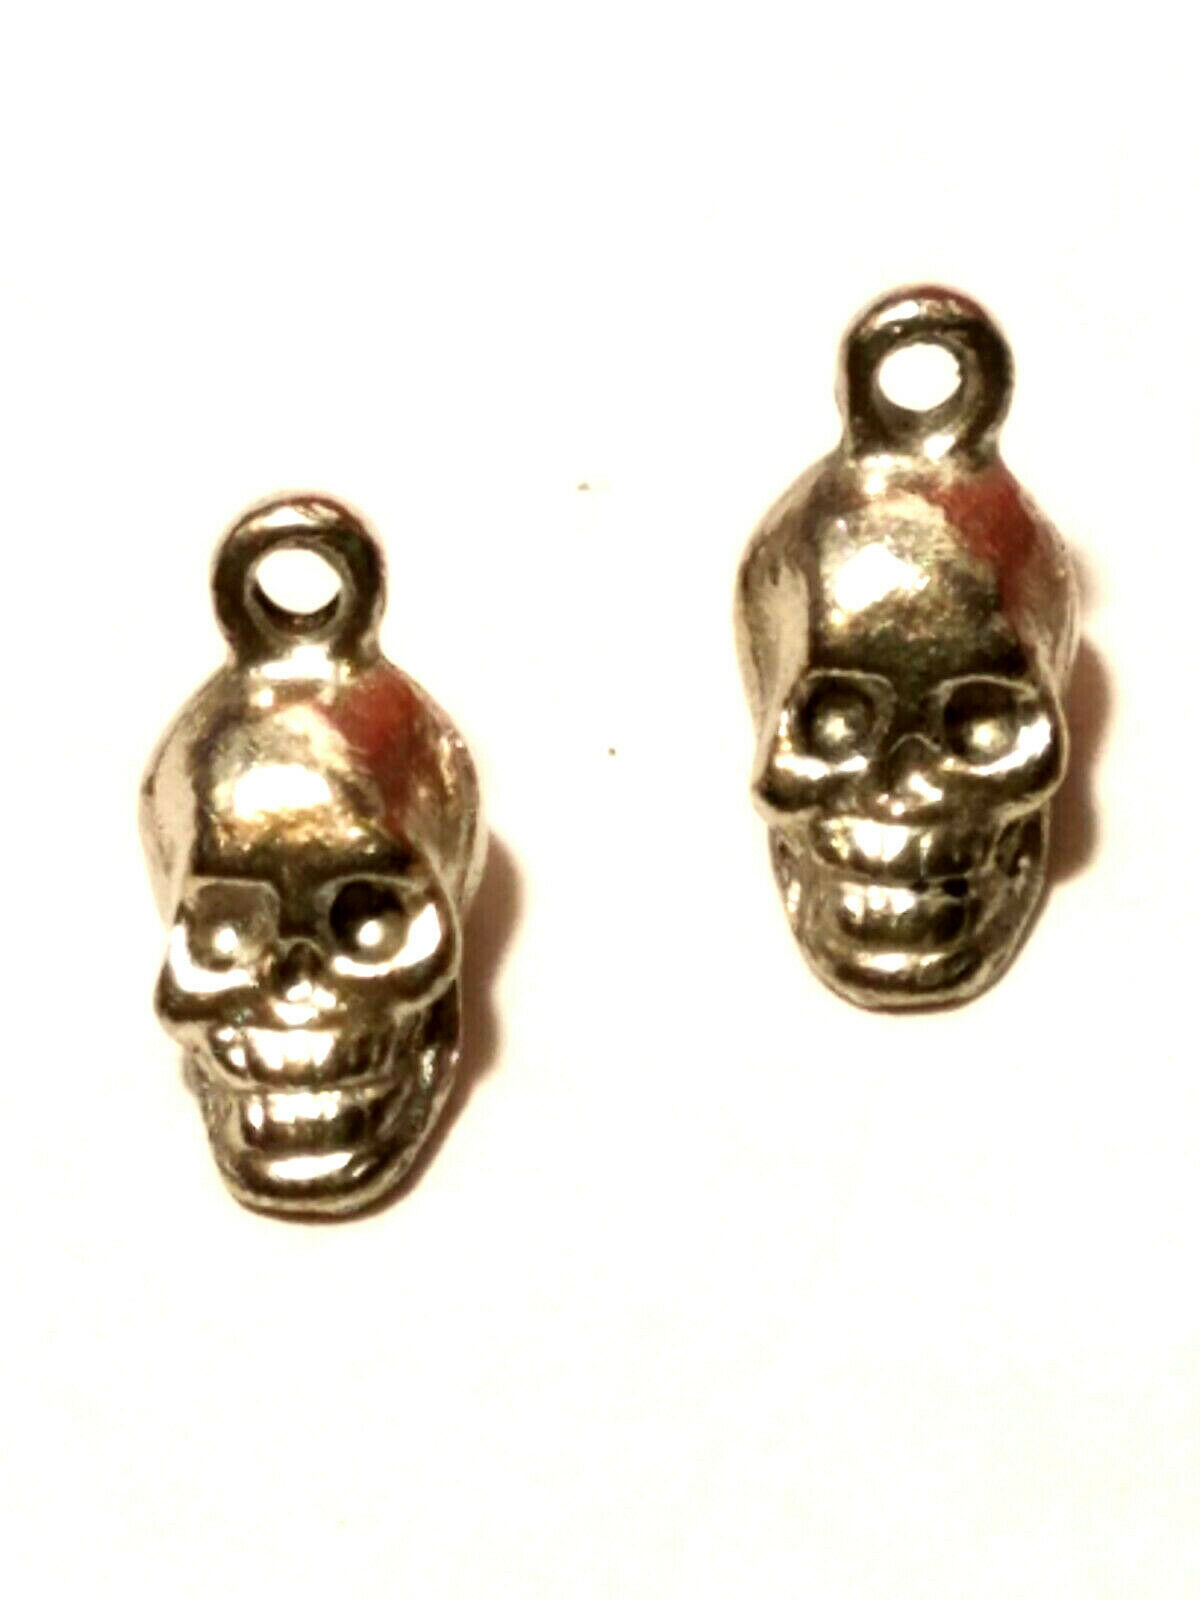 2pcs. Small Skull Fine Pewter Charms 6mm L x 12mm W x 5mm D